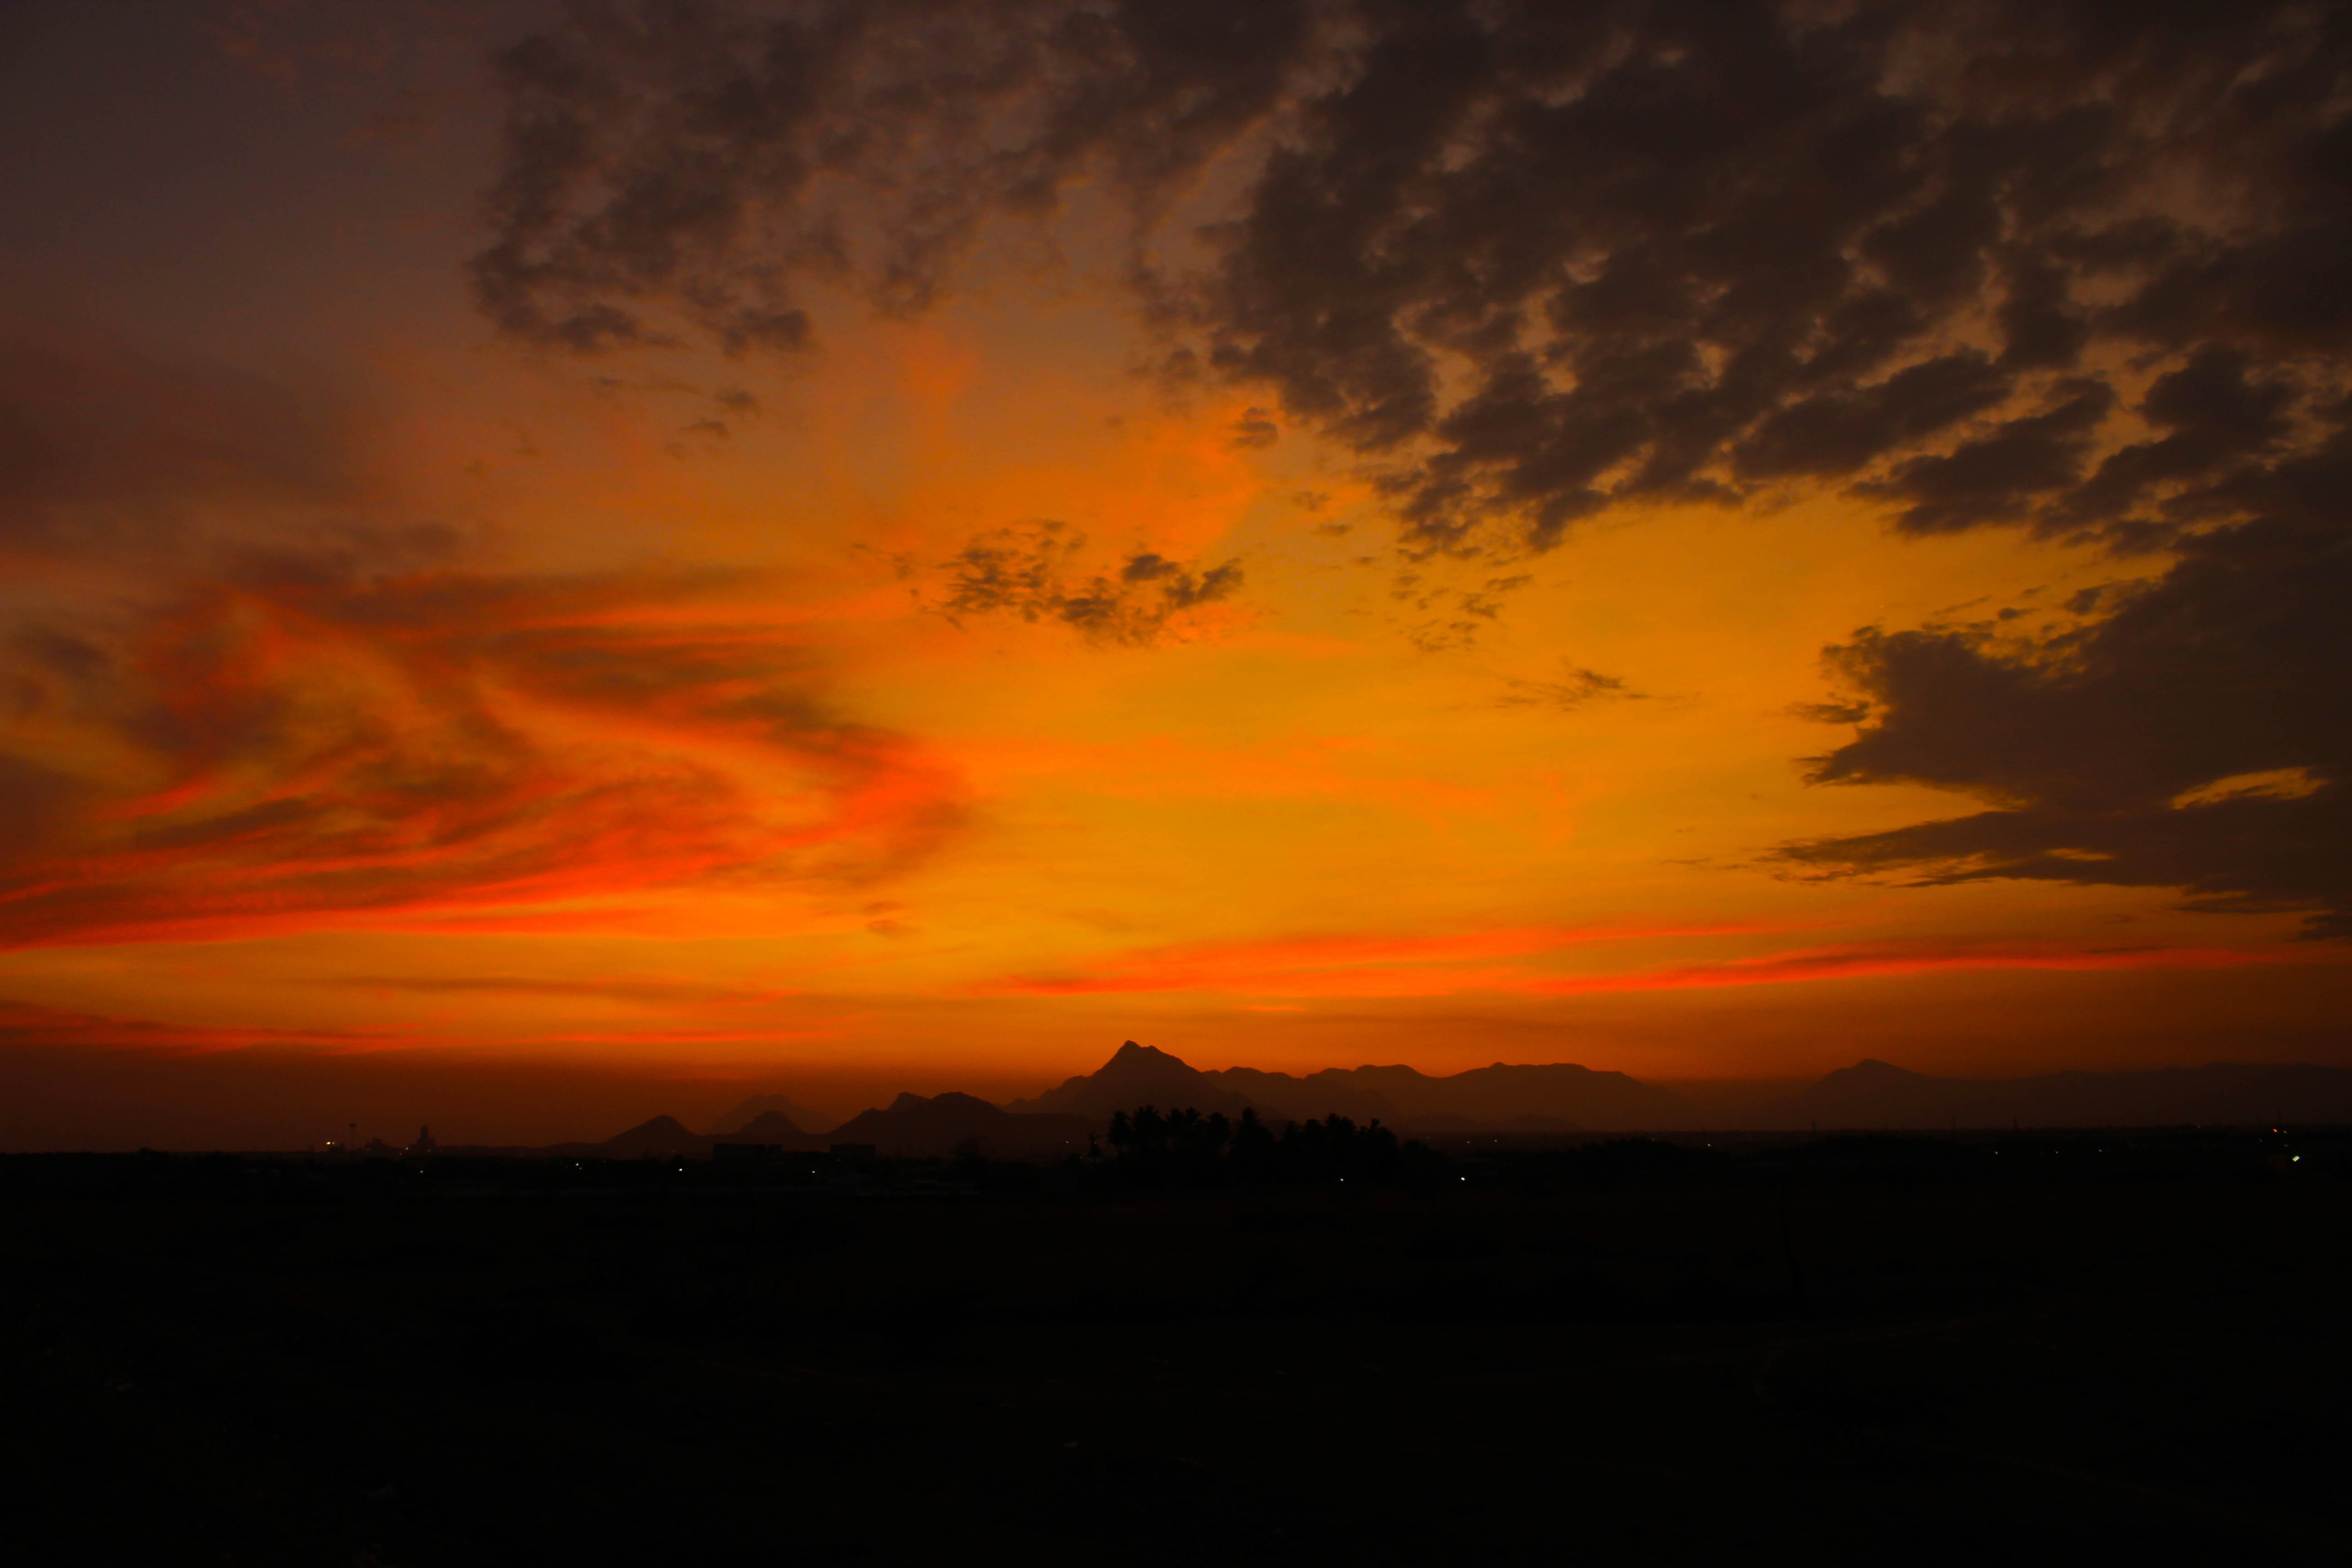 Swirling clouds in a reg and orange sunset sky, with silhouetted mountains in the distance